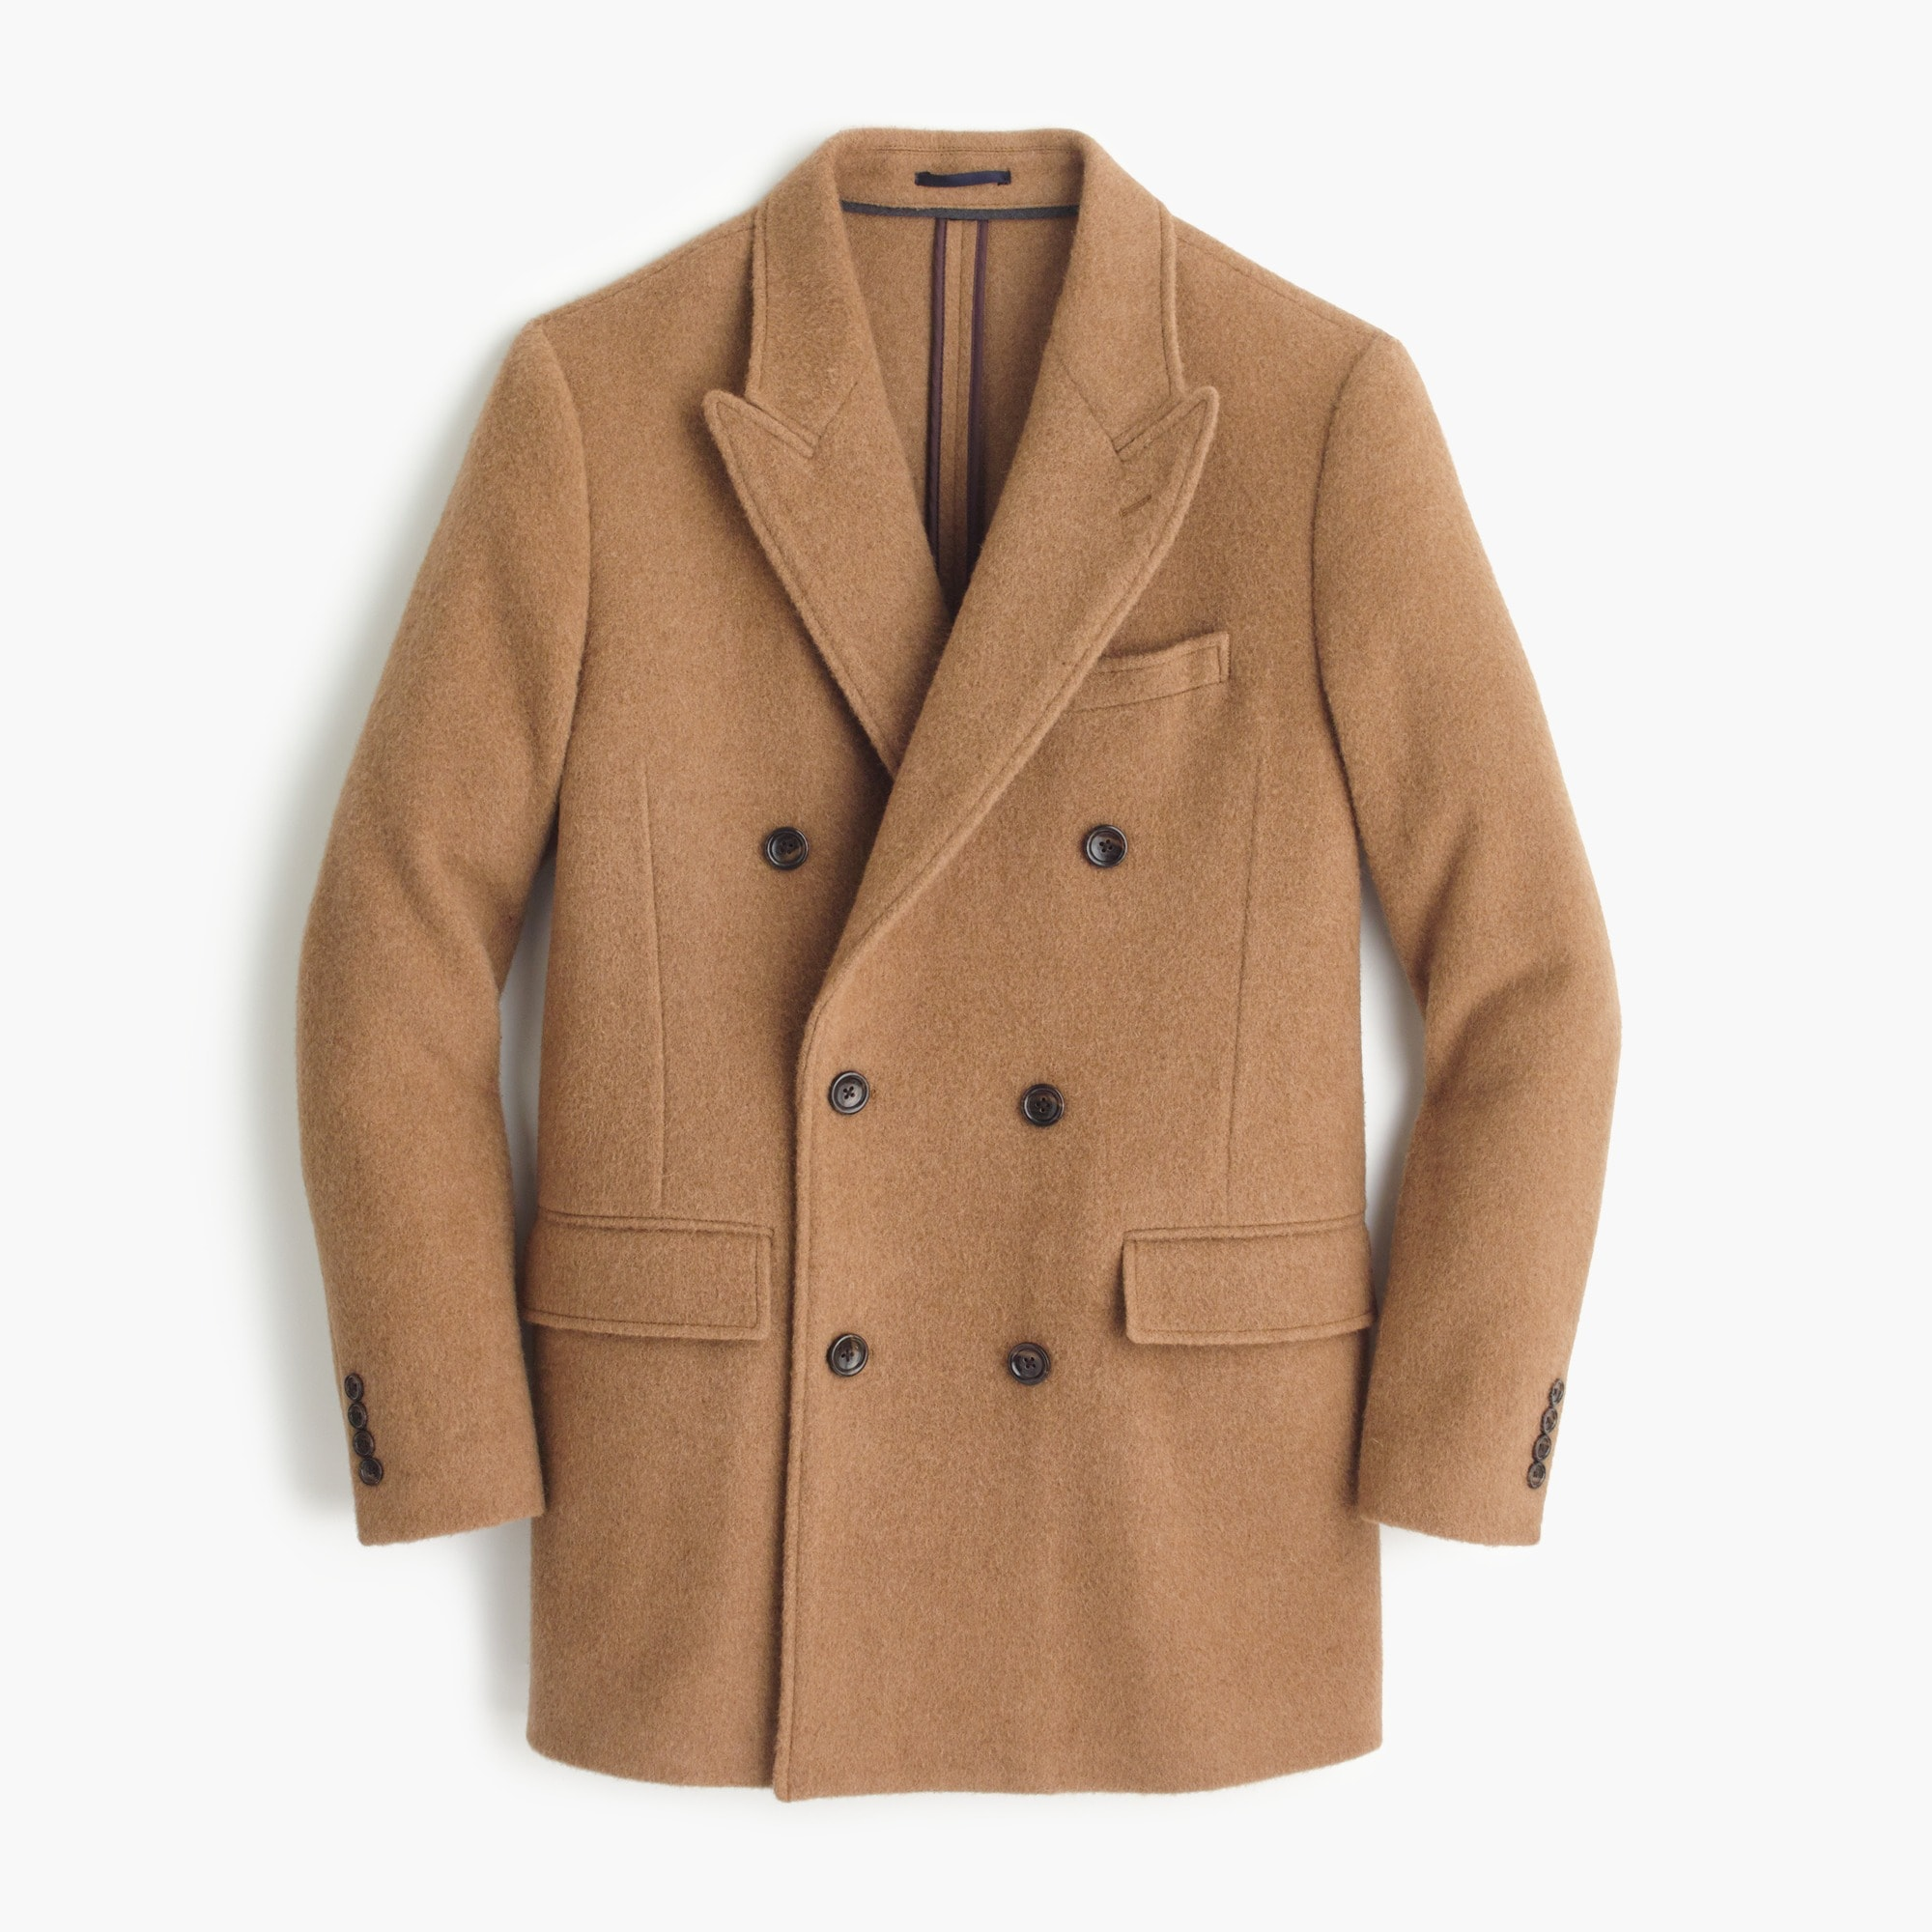 English camel-hair peacoat